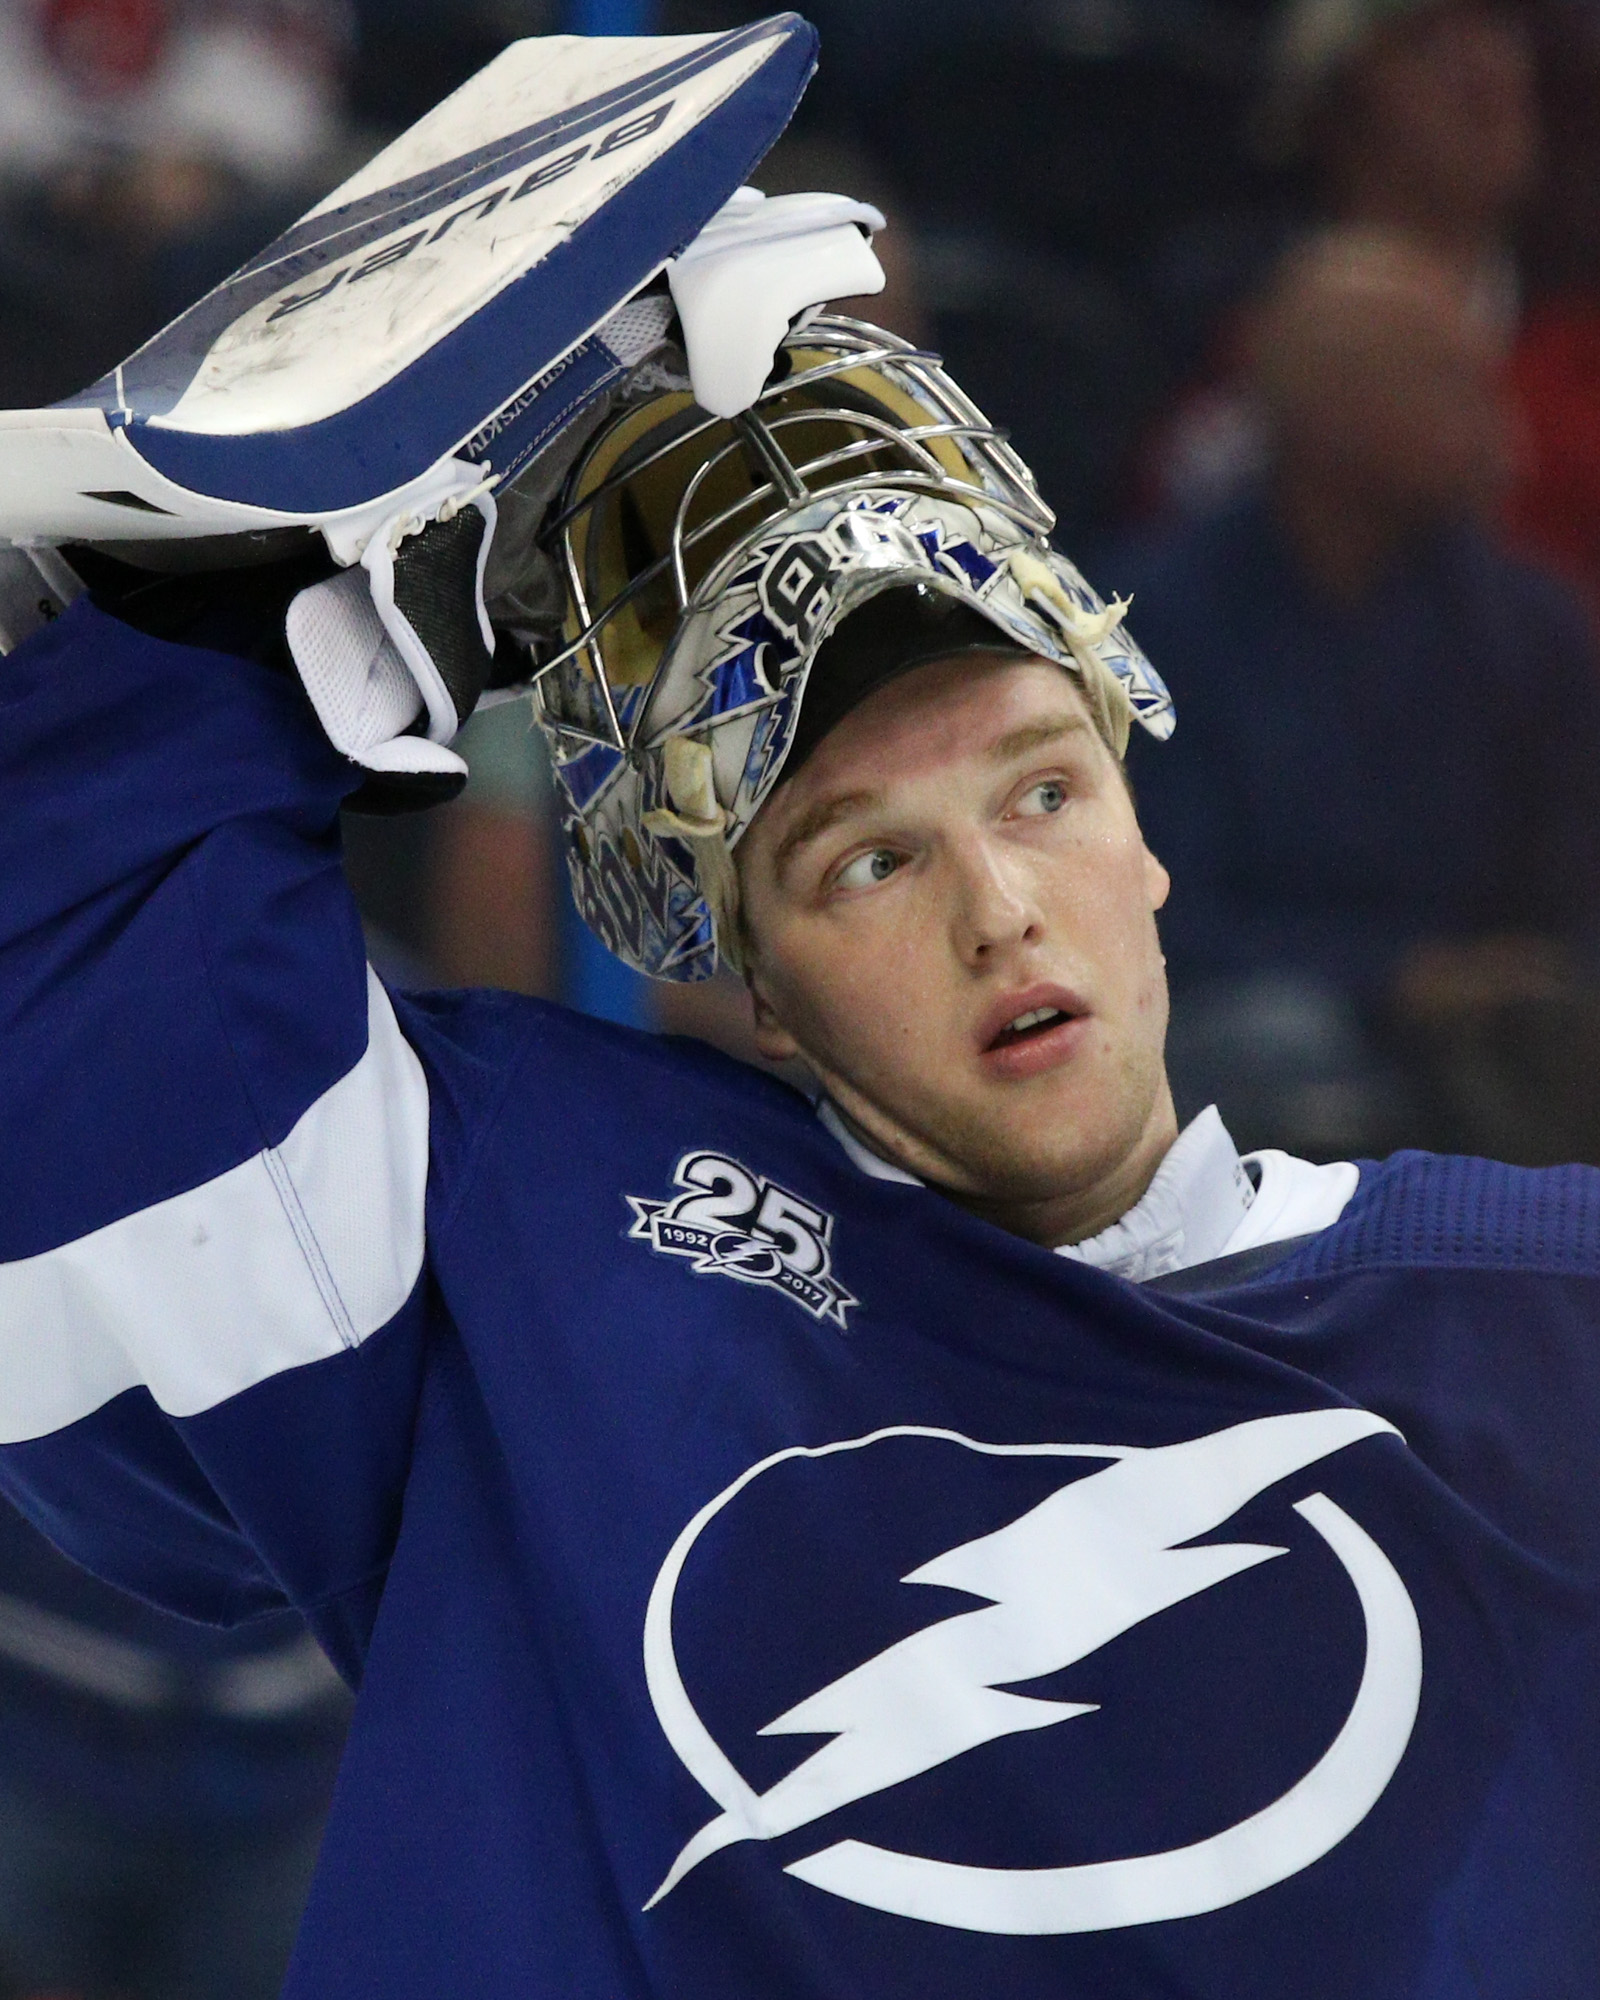 Vasilevskiy is already high on the Lightning's win list./ANDREW J. KRAMER